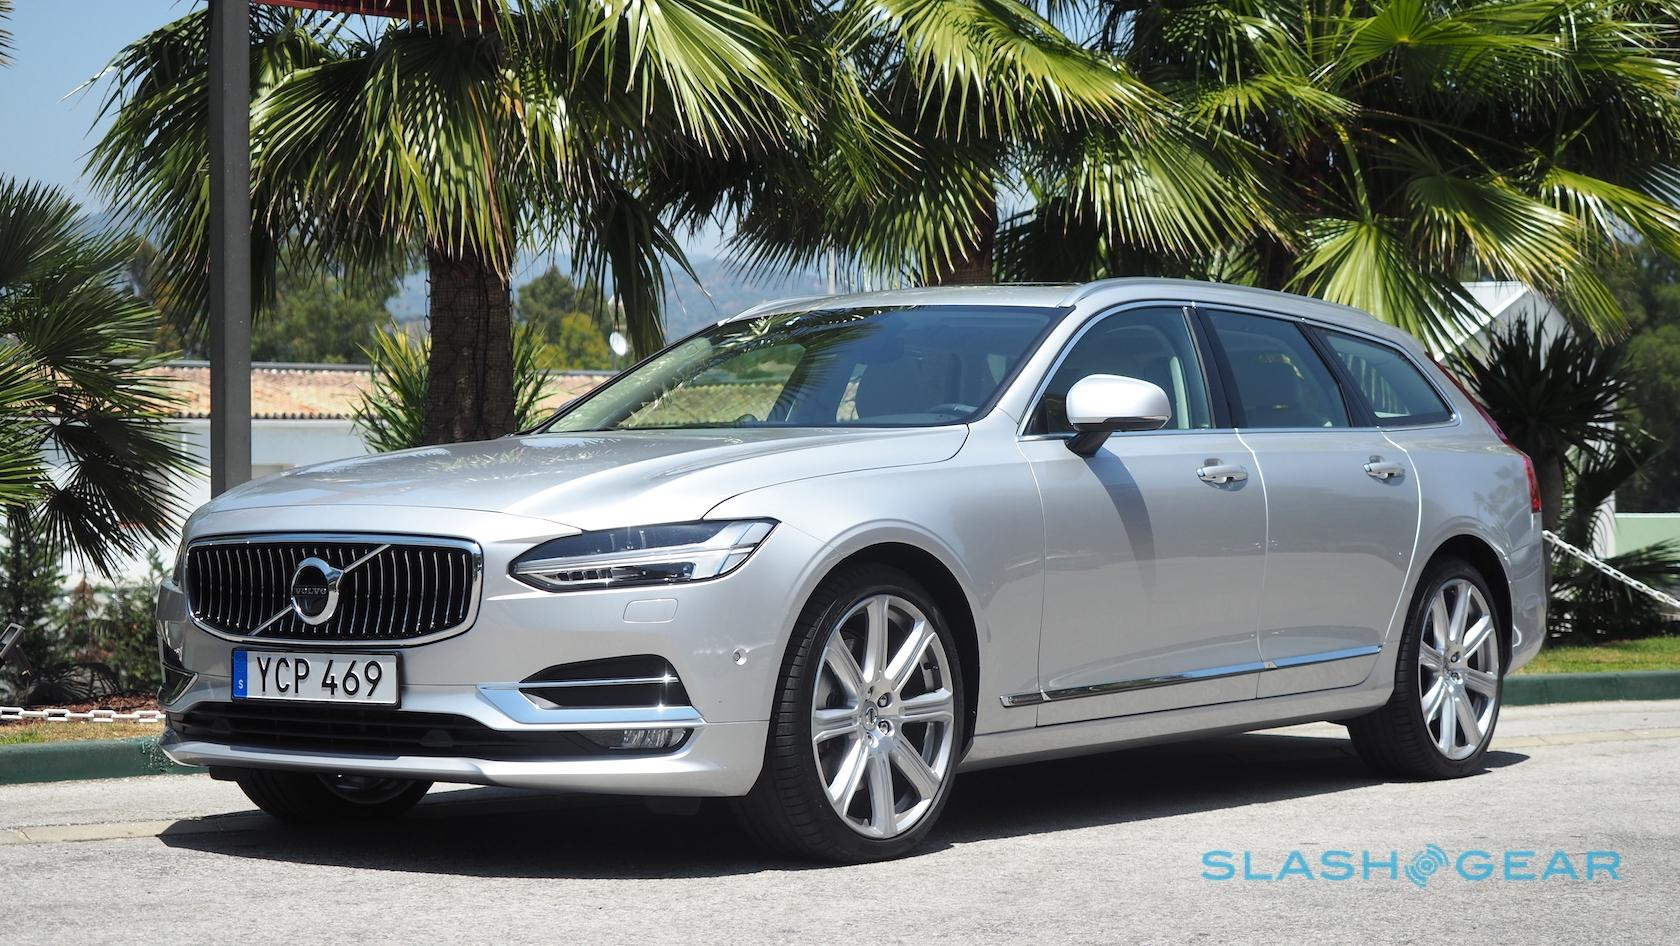 2018 Volvo V90 Preview Roll Out The Welcome Wagon Slashgear